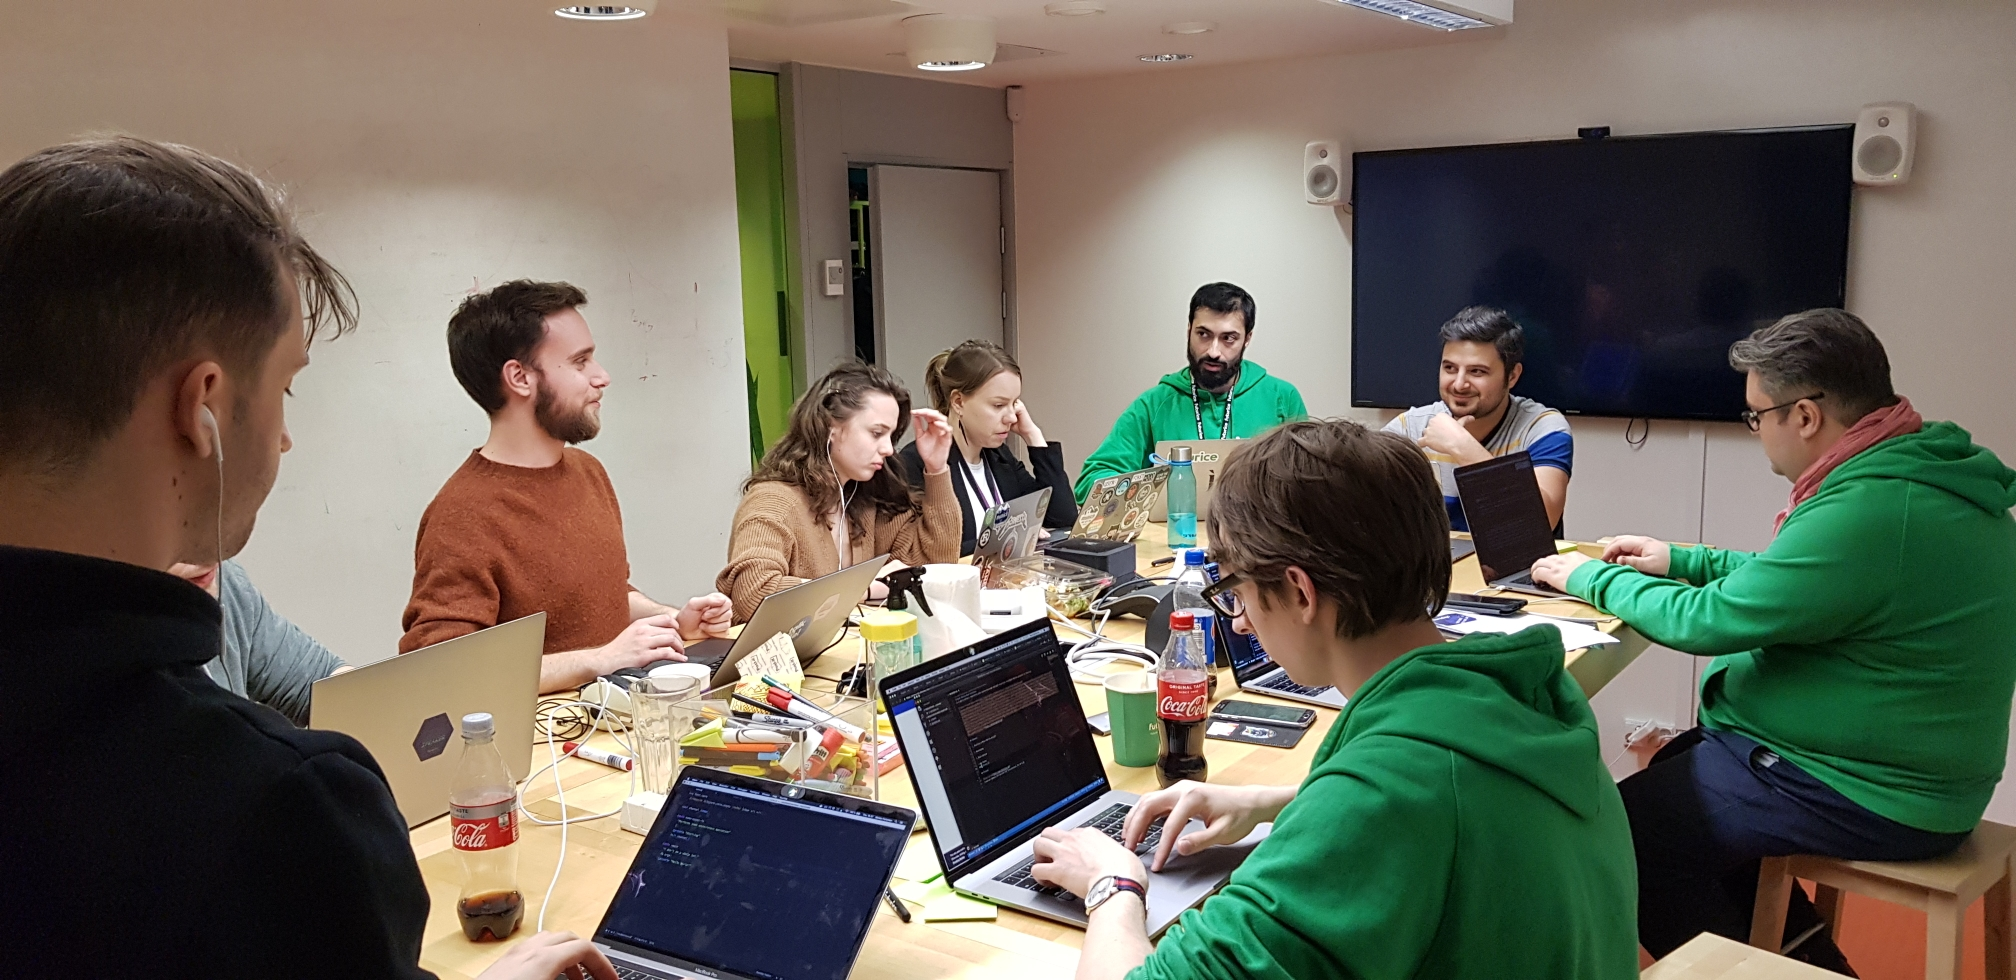 Team working on open source documentation